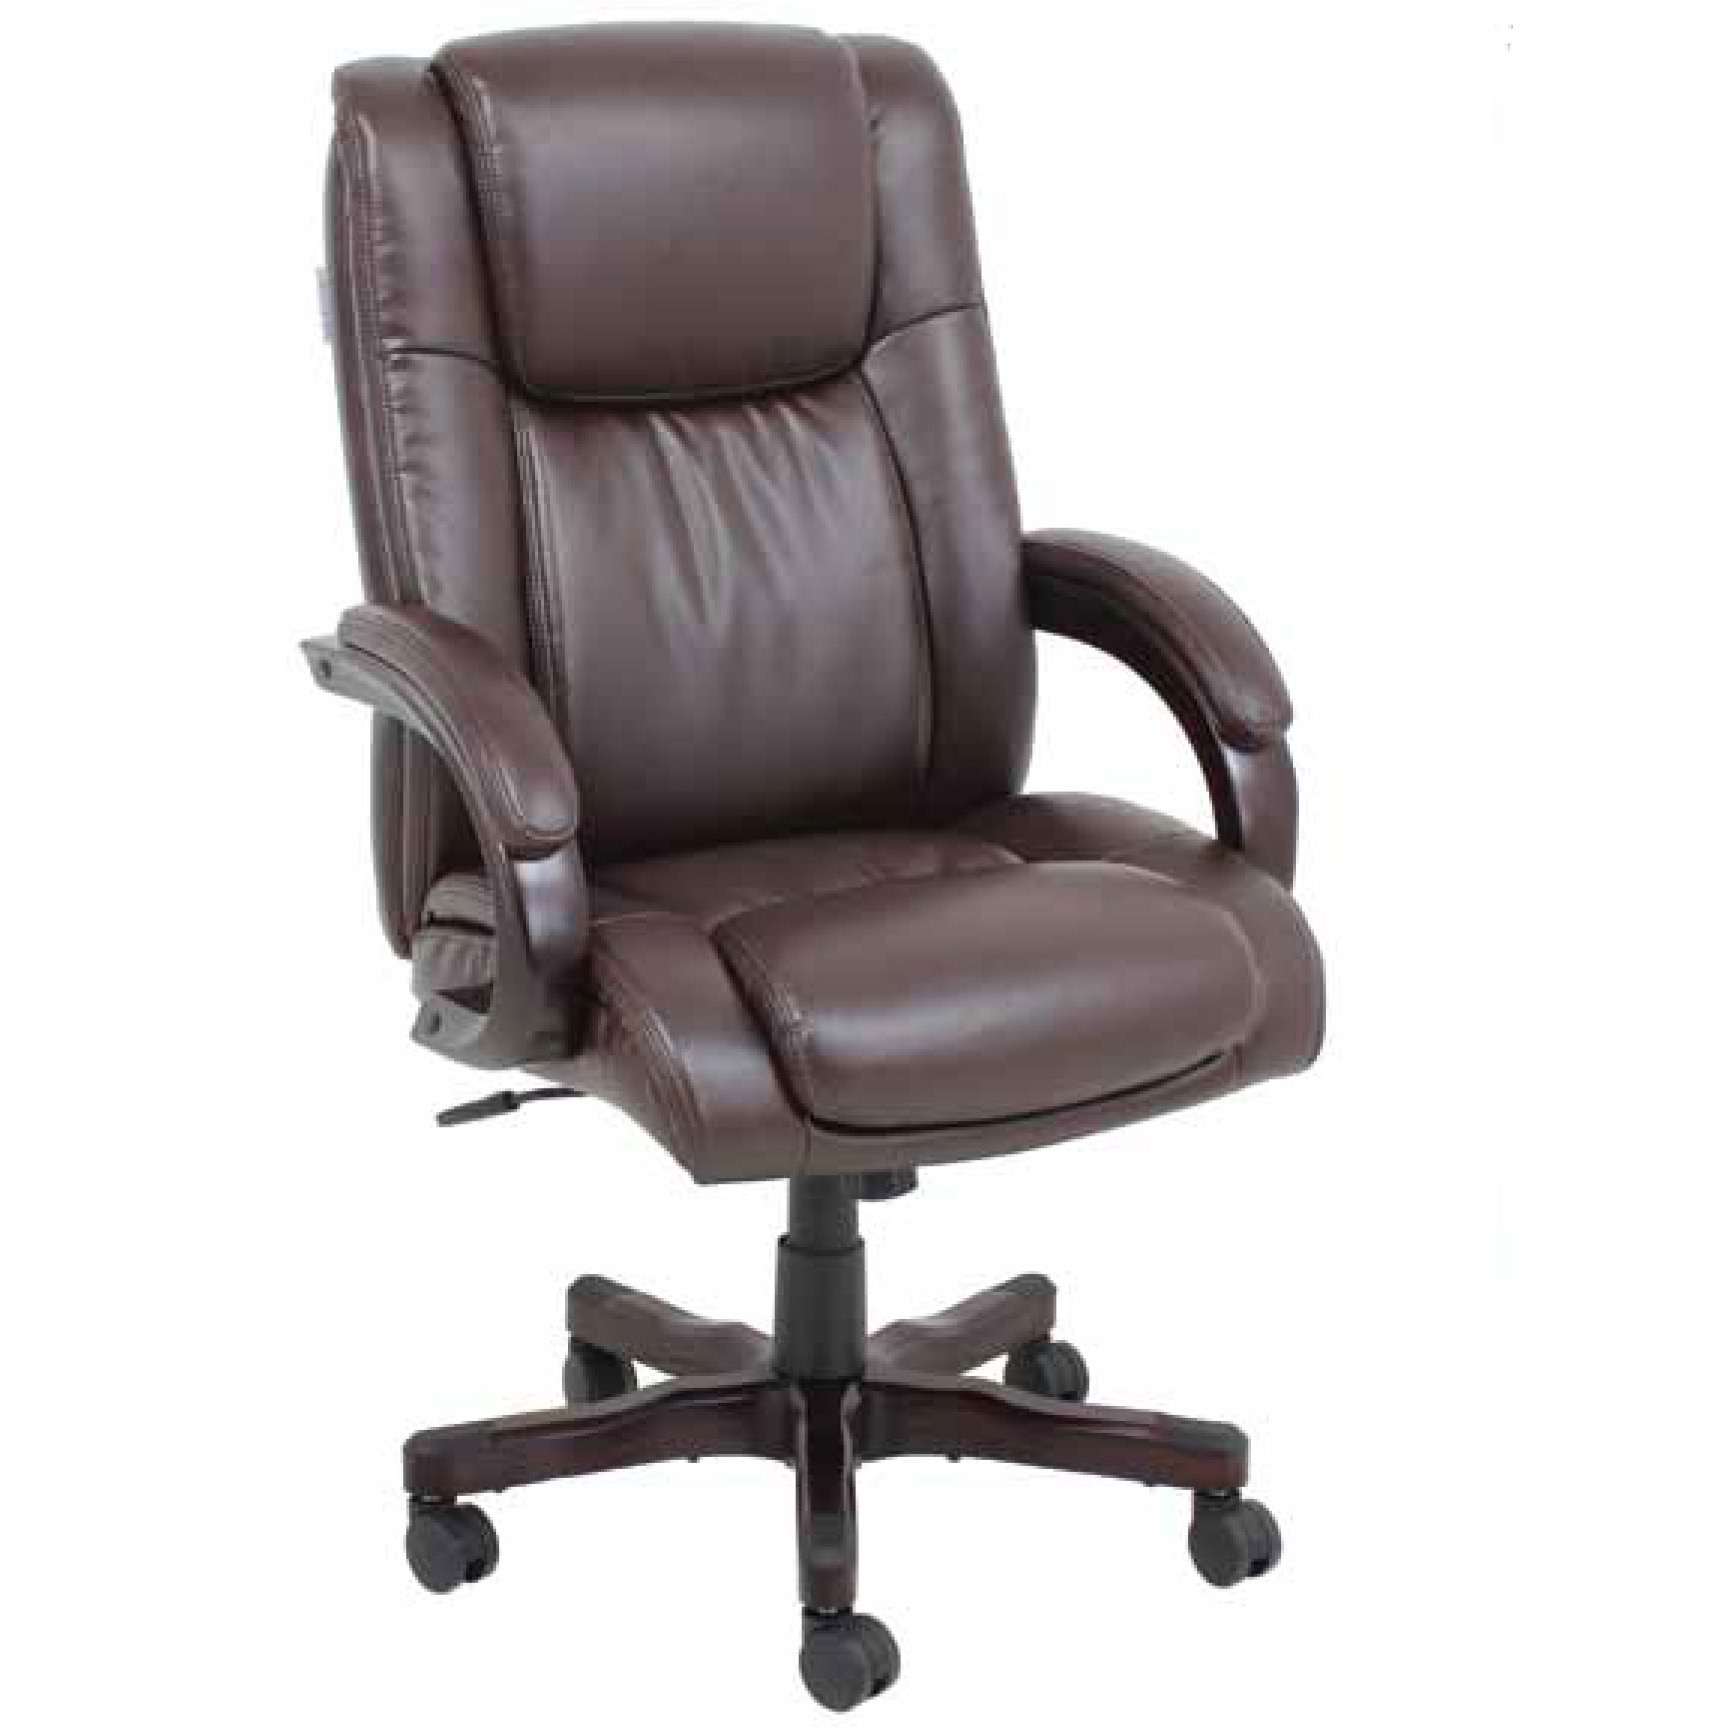 home office chair elderly potty barcalounger titan ii desk recliner